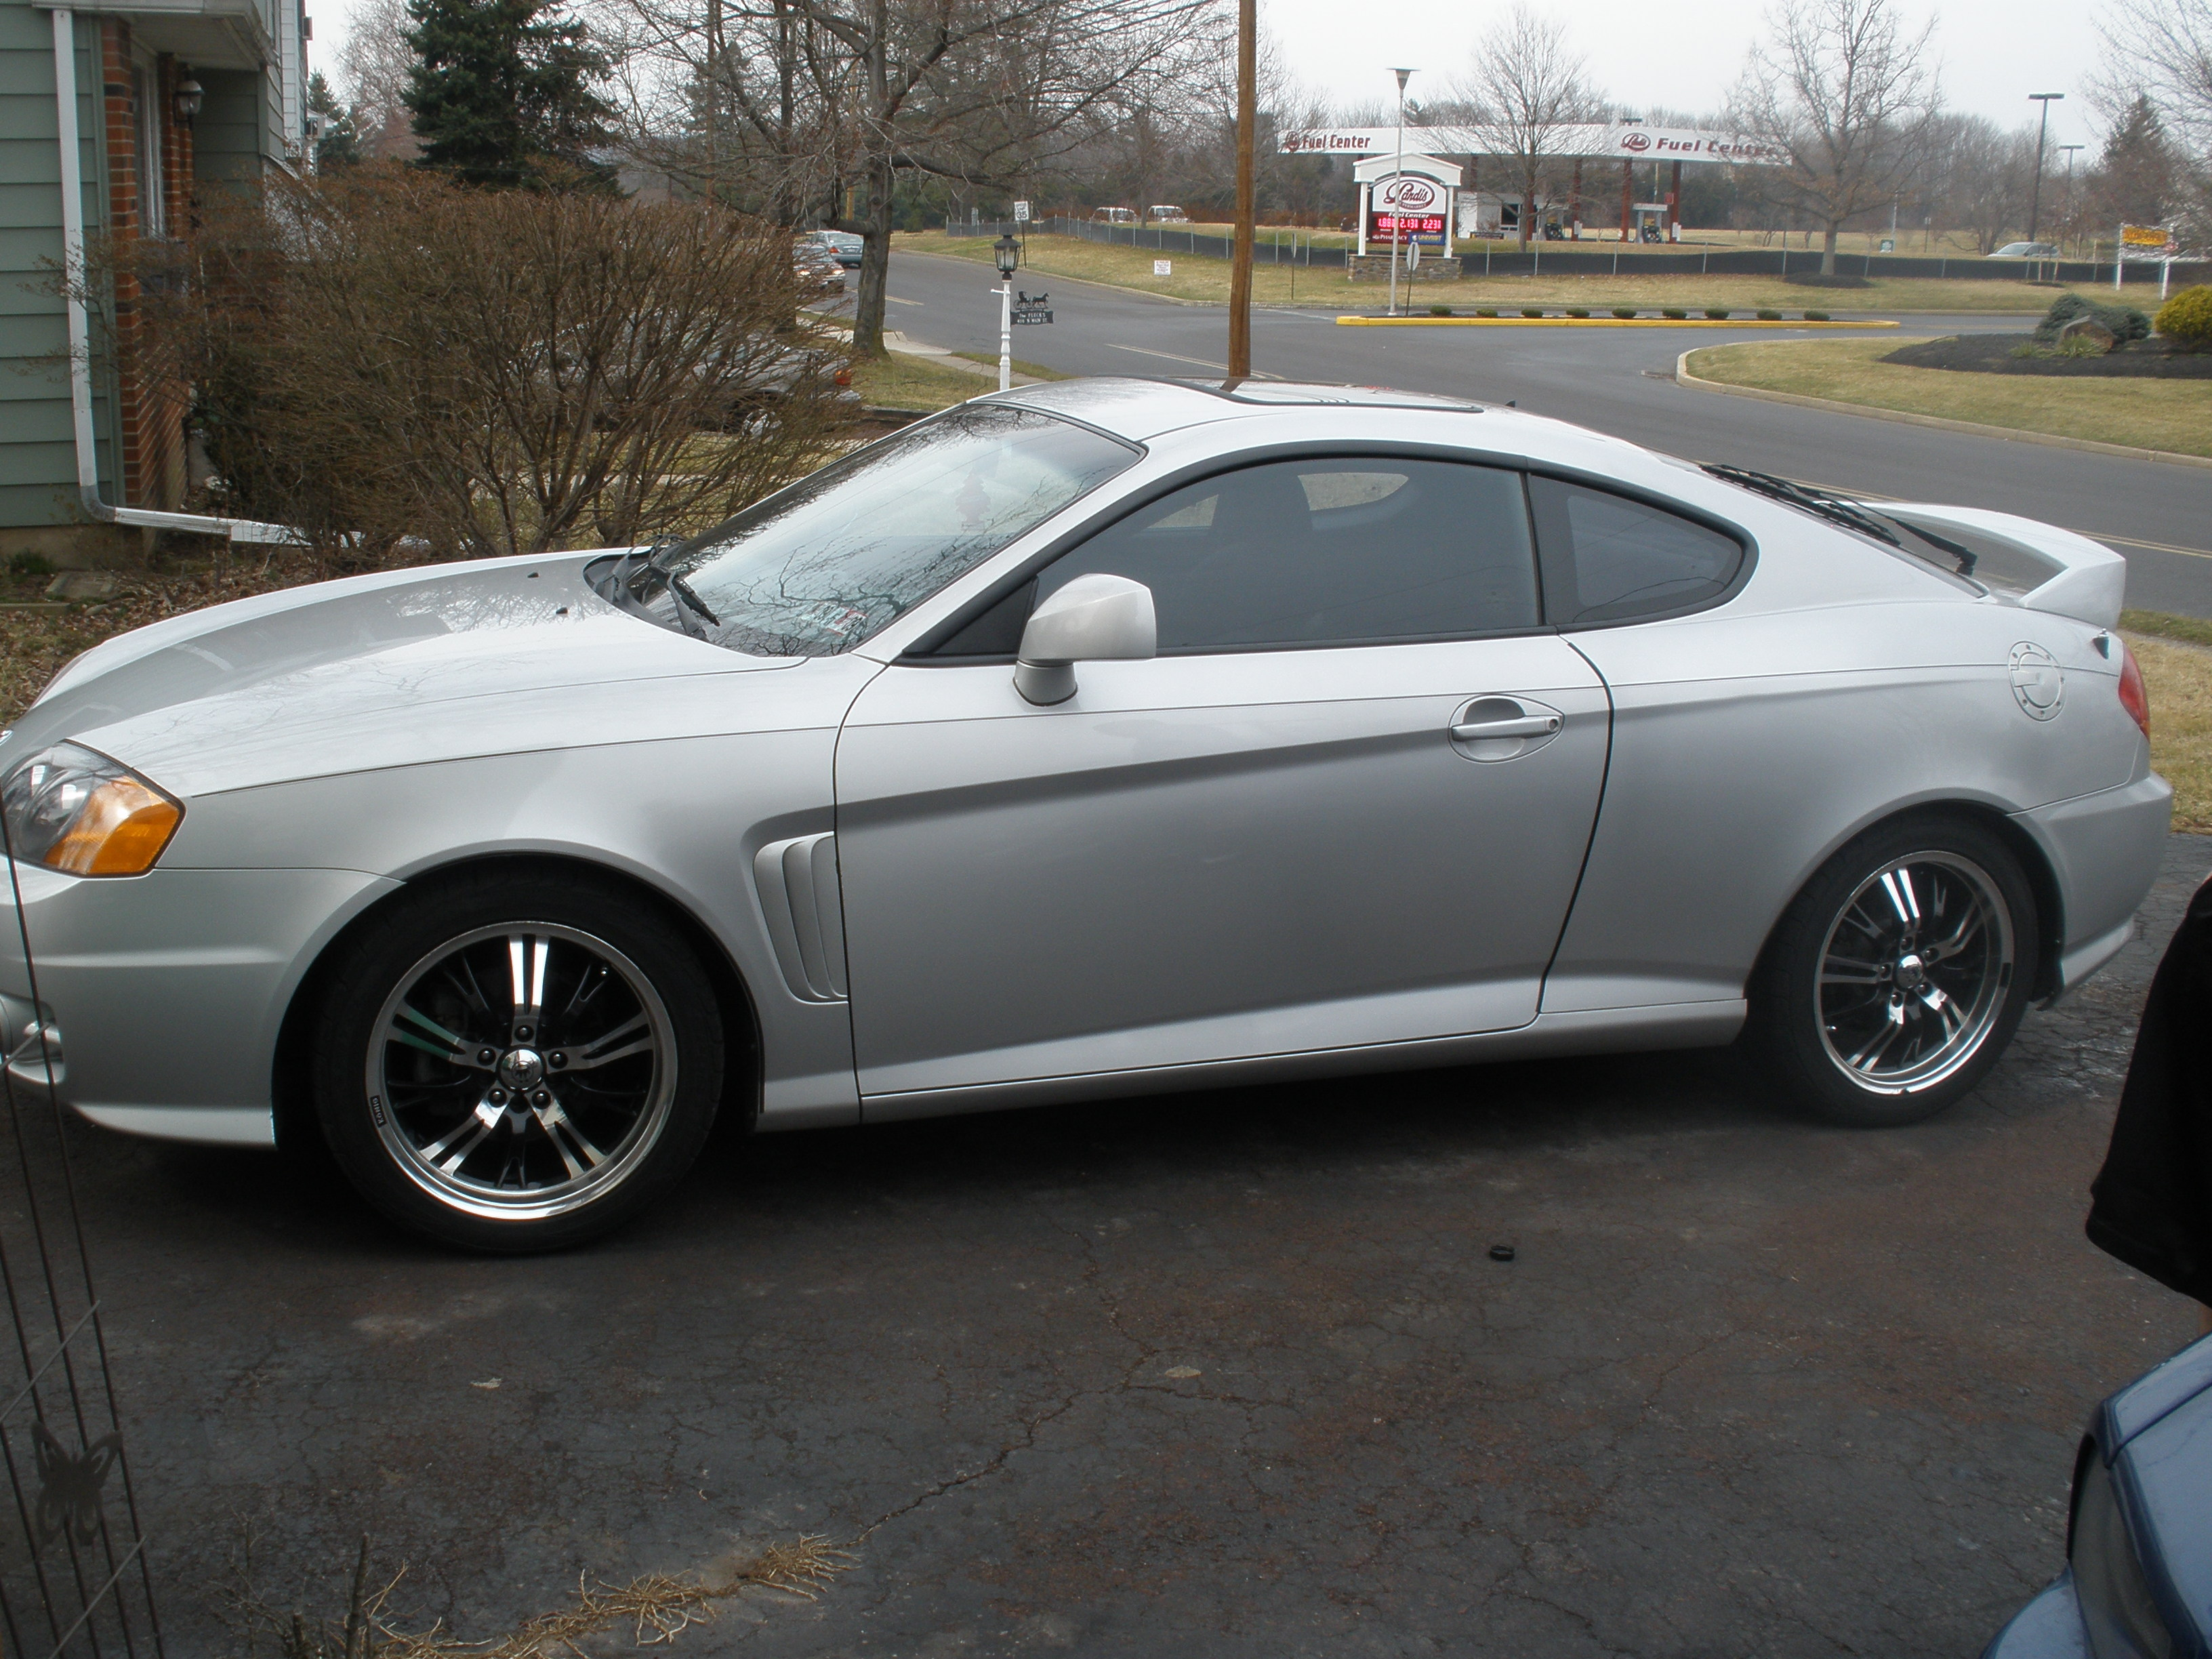 2004 Hyundai Tiburon Information And Photos Momentcar